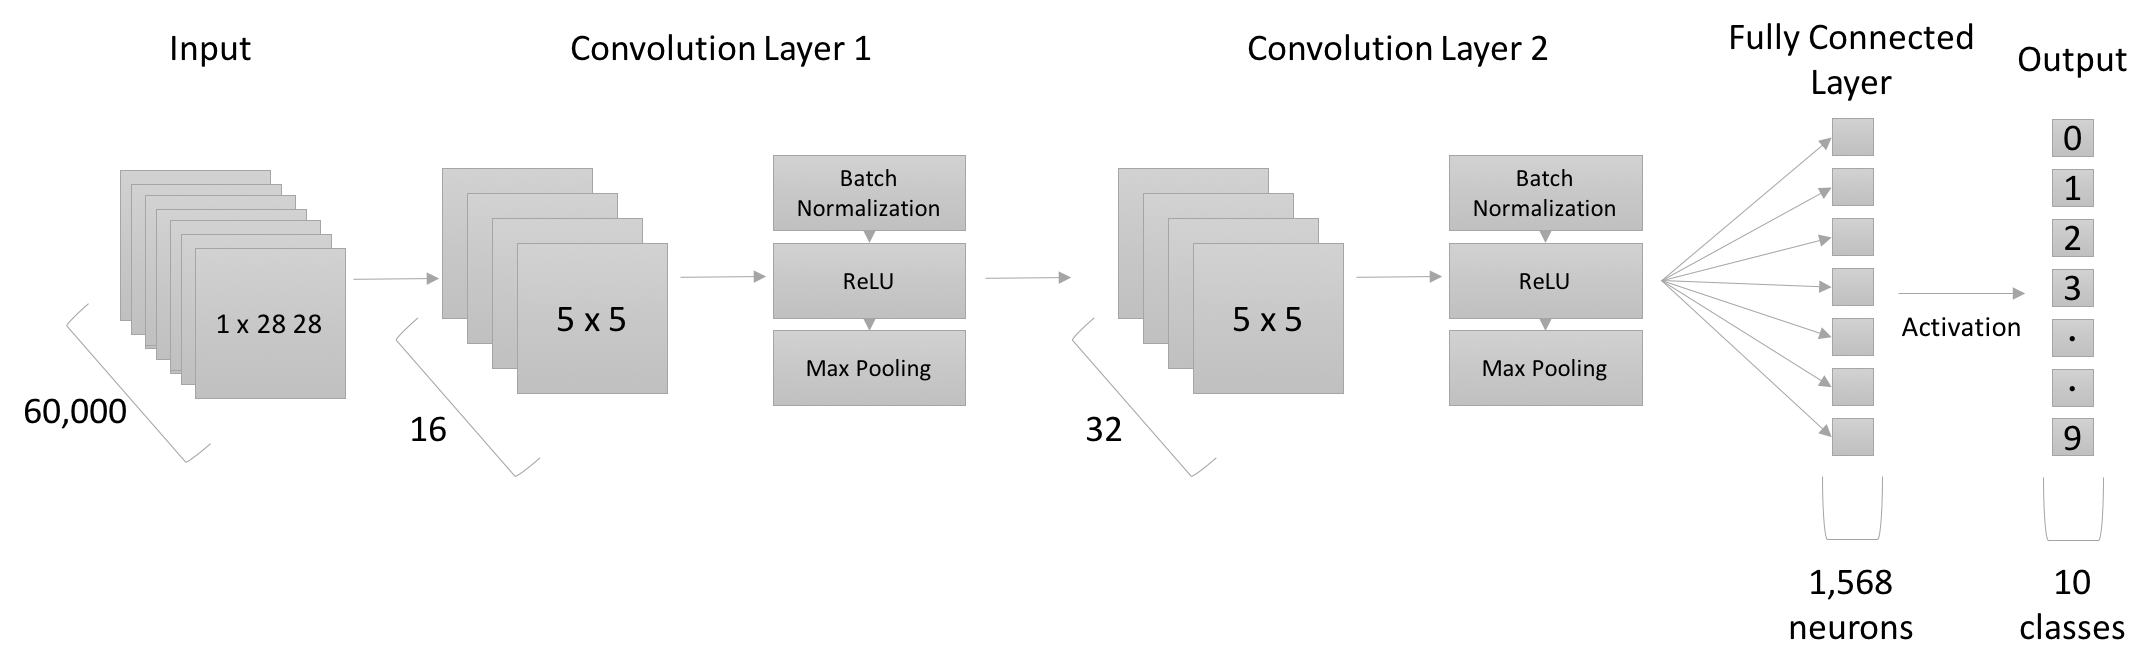 Intro to PyTorch with image classification on a Fashion